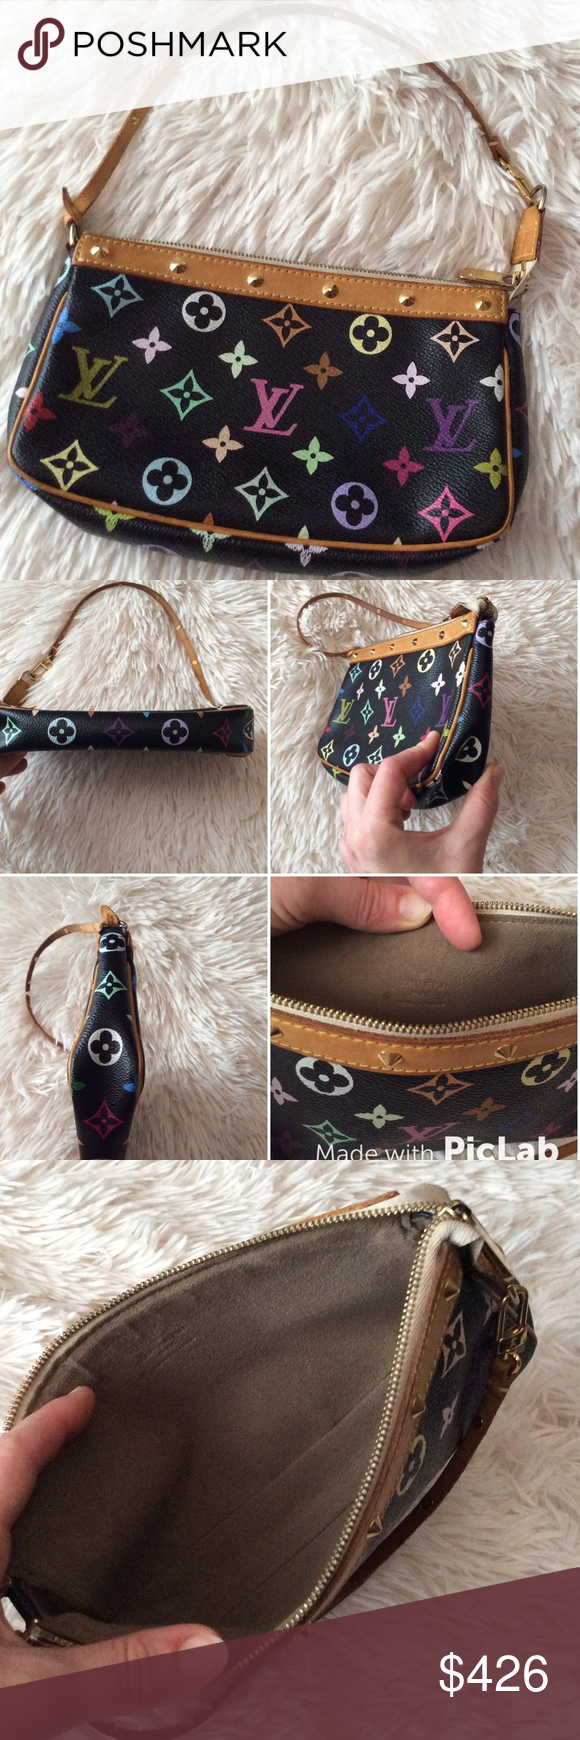 Final PriceLouis Vuitton Multicolor Pouchette Authentic guaranteed  excellent used condition Louis Vuitton monogram multicolor pochette not the  mini one. 071508fd86459